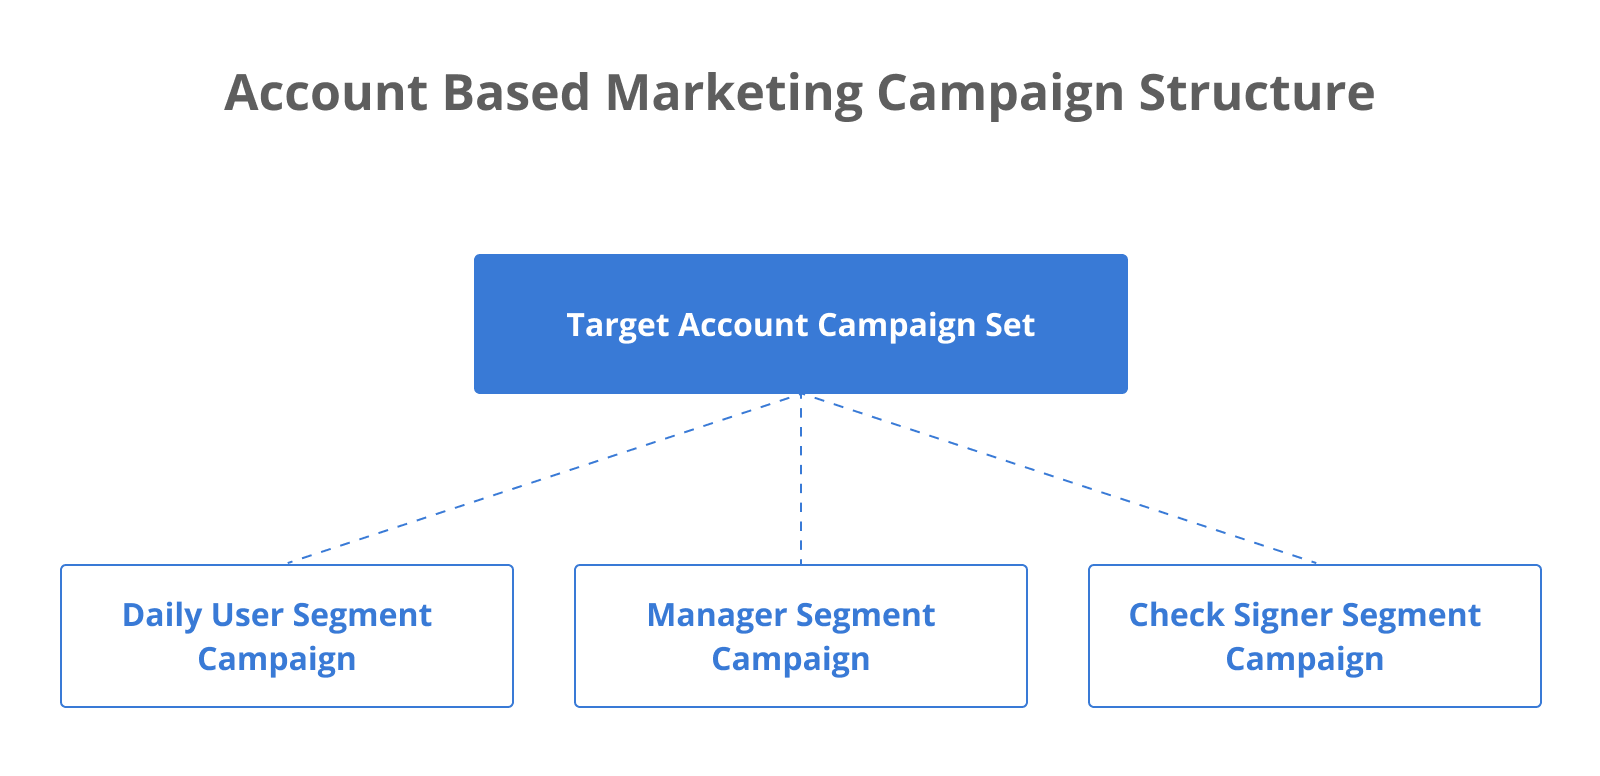 Account based marketing campaign structure for B2B SaaS: Target Account Campaign Set - Daily User Segment vs Manager Segment Campaign vs Check Signer Segment Campaign